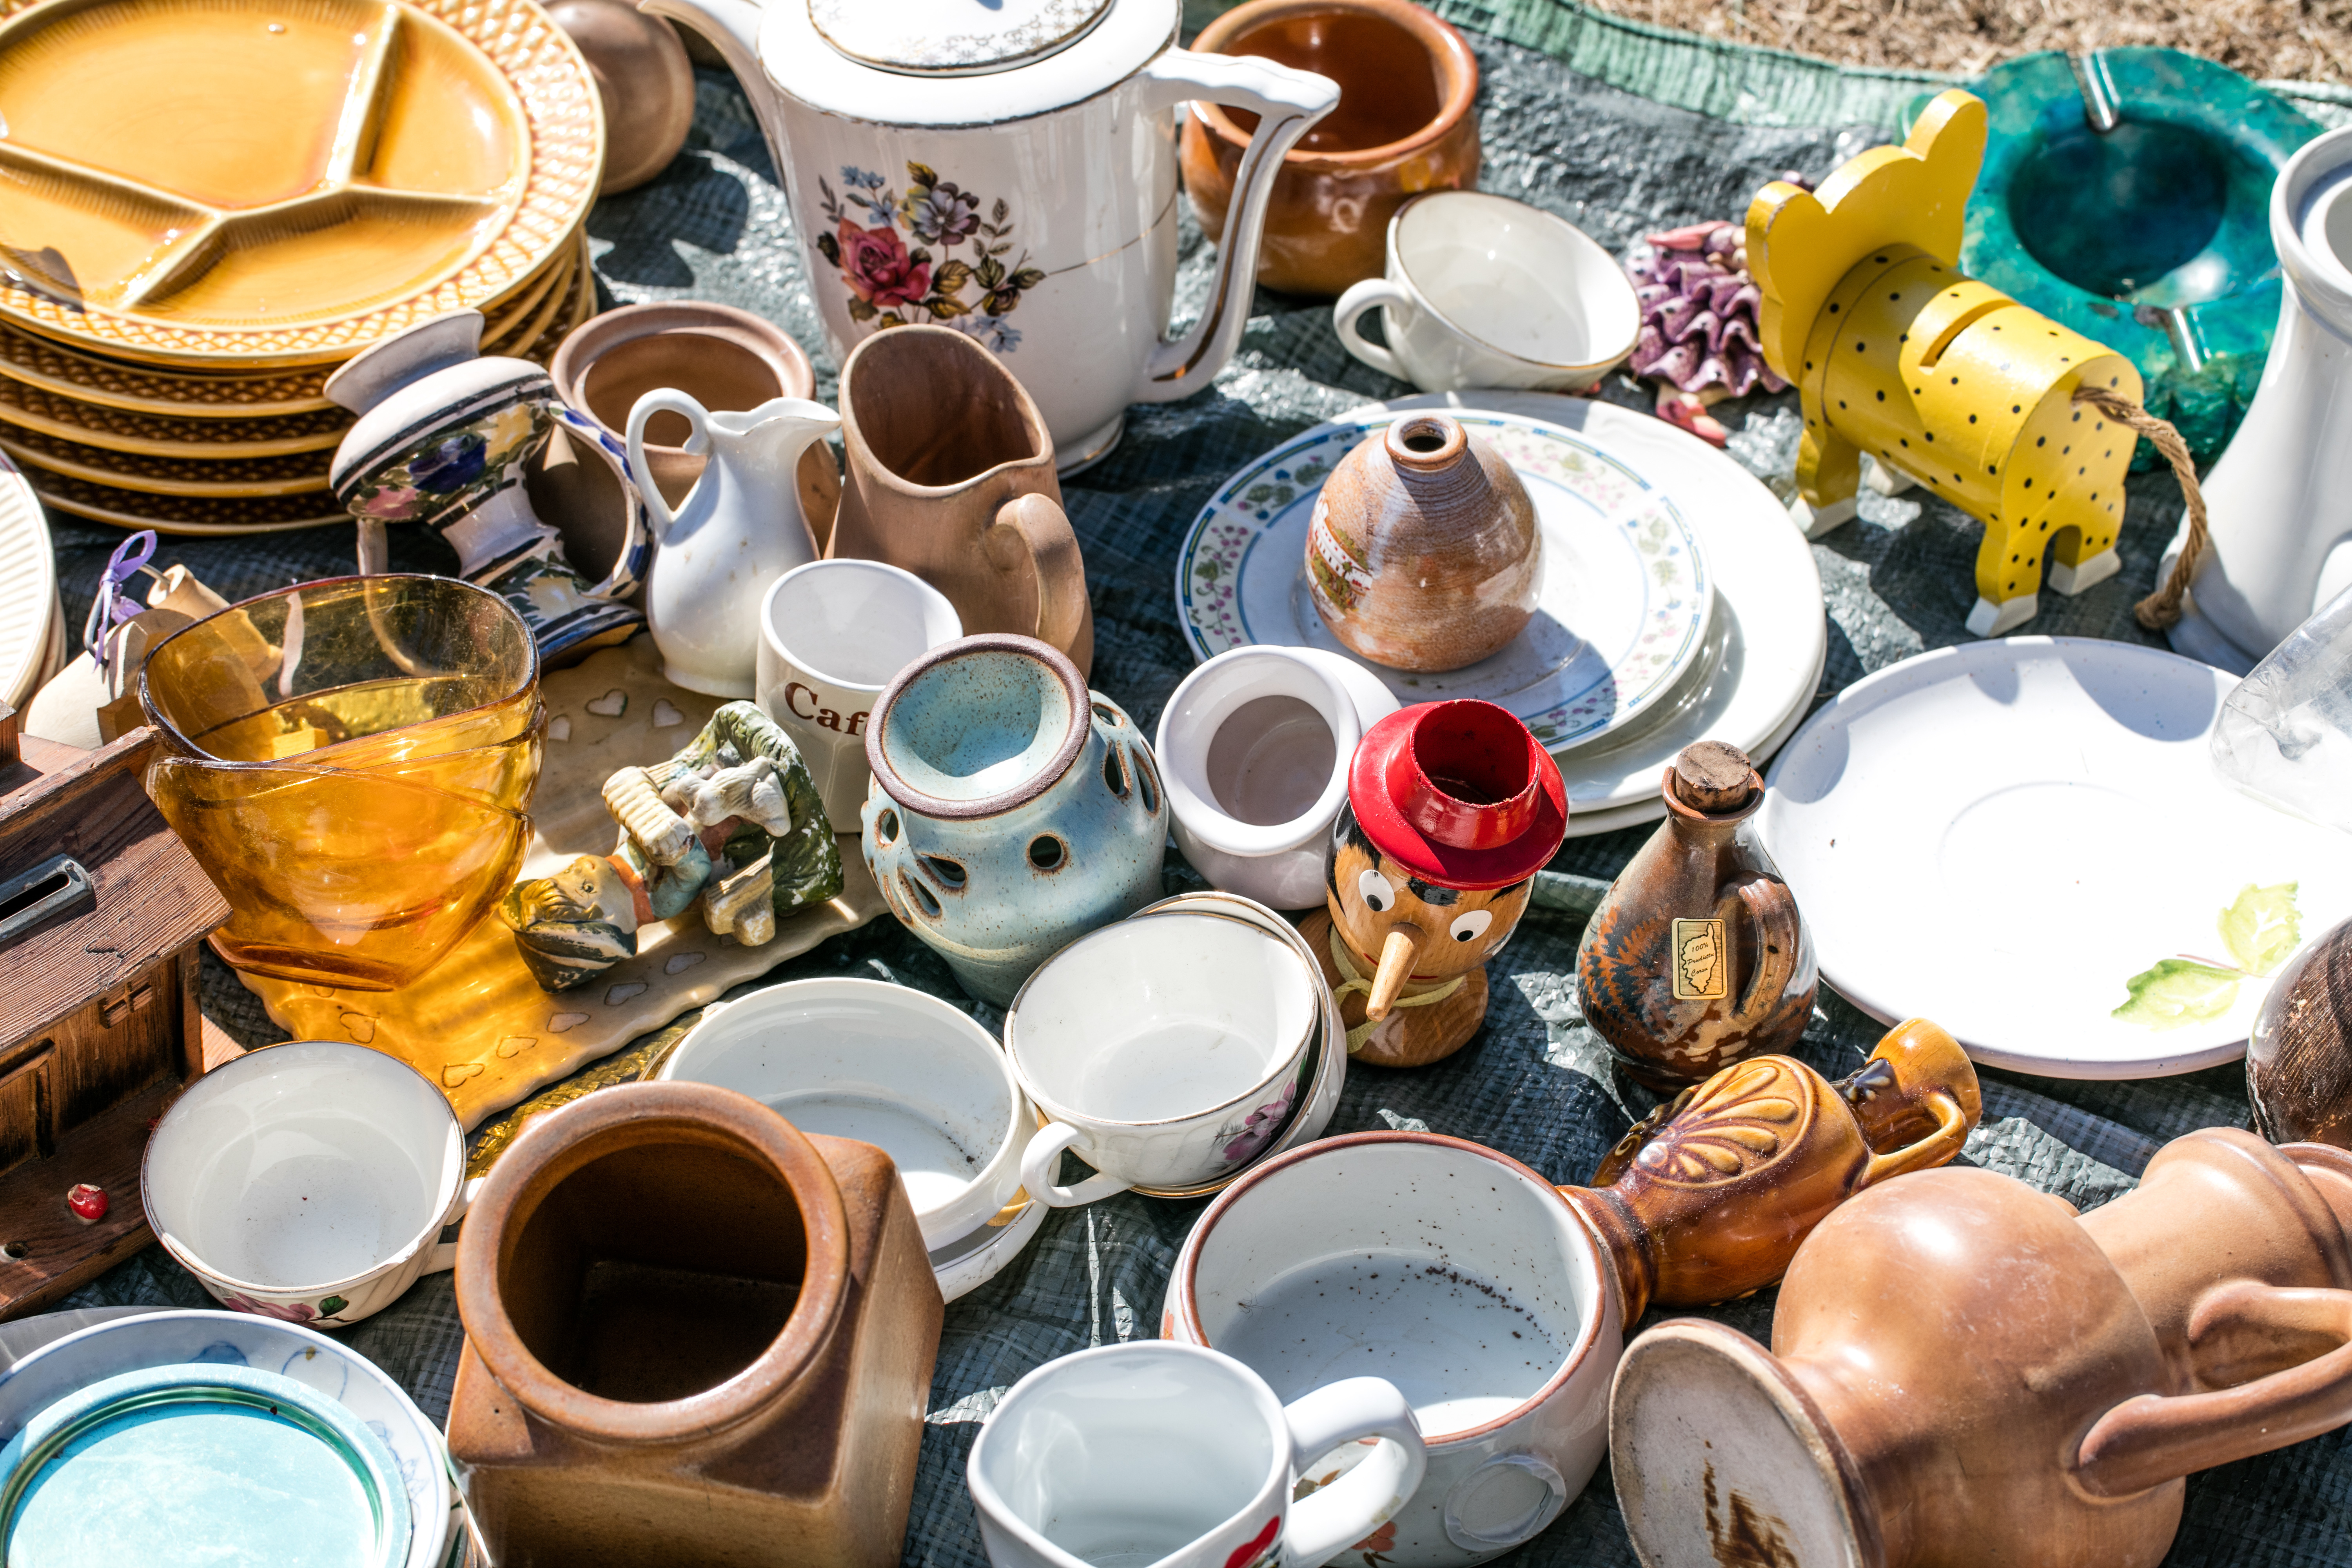 various household items like mugs and plates